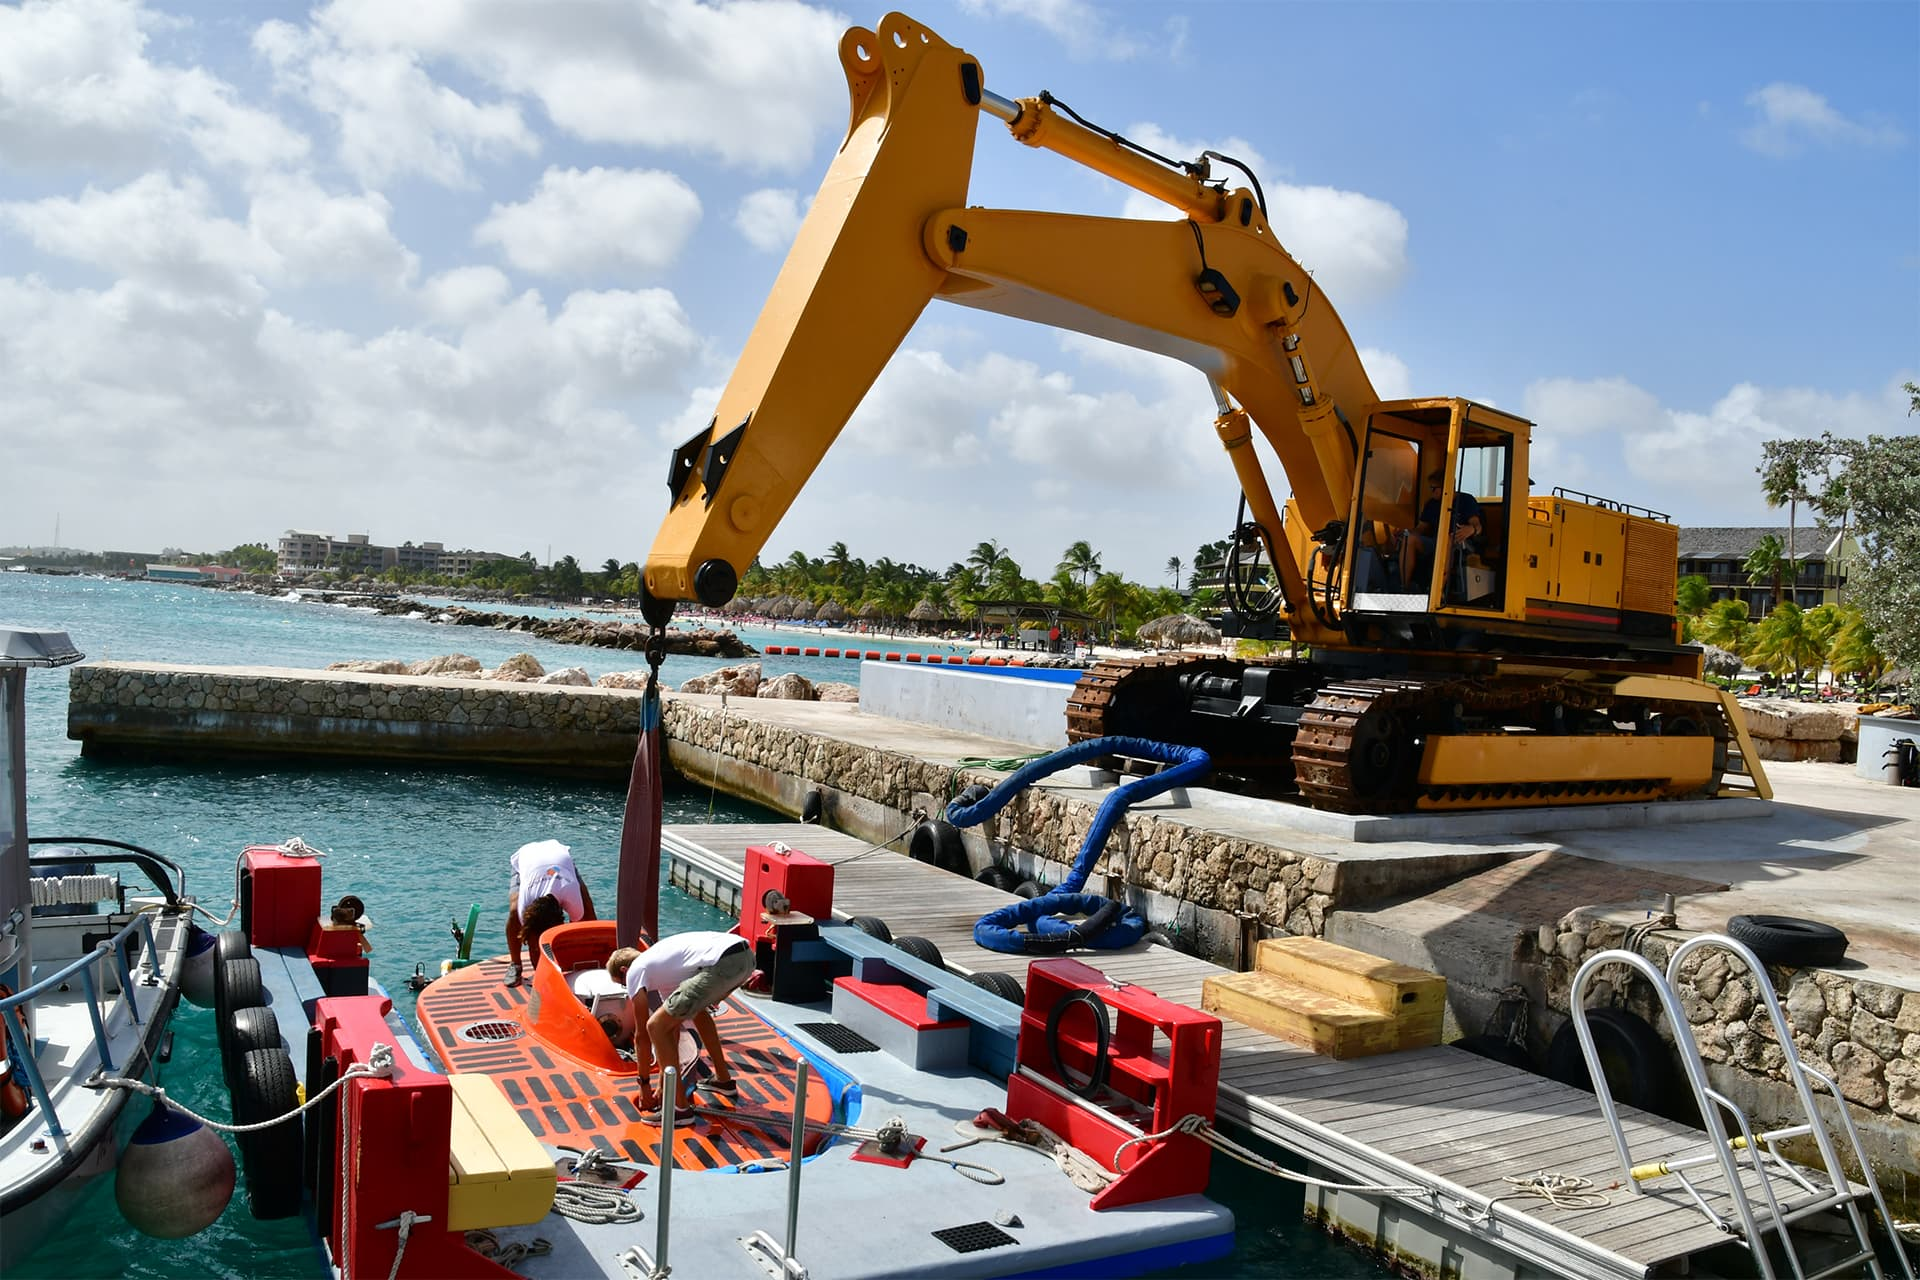 Crane keeps submarine in the water while workers prepare it to discover the unknown depths of Curaçao.